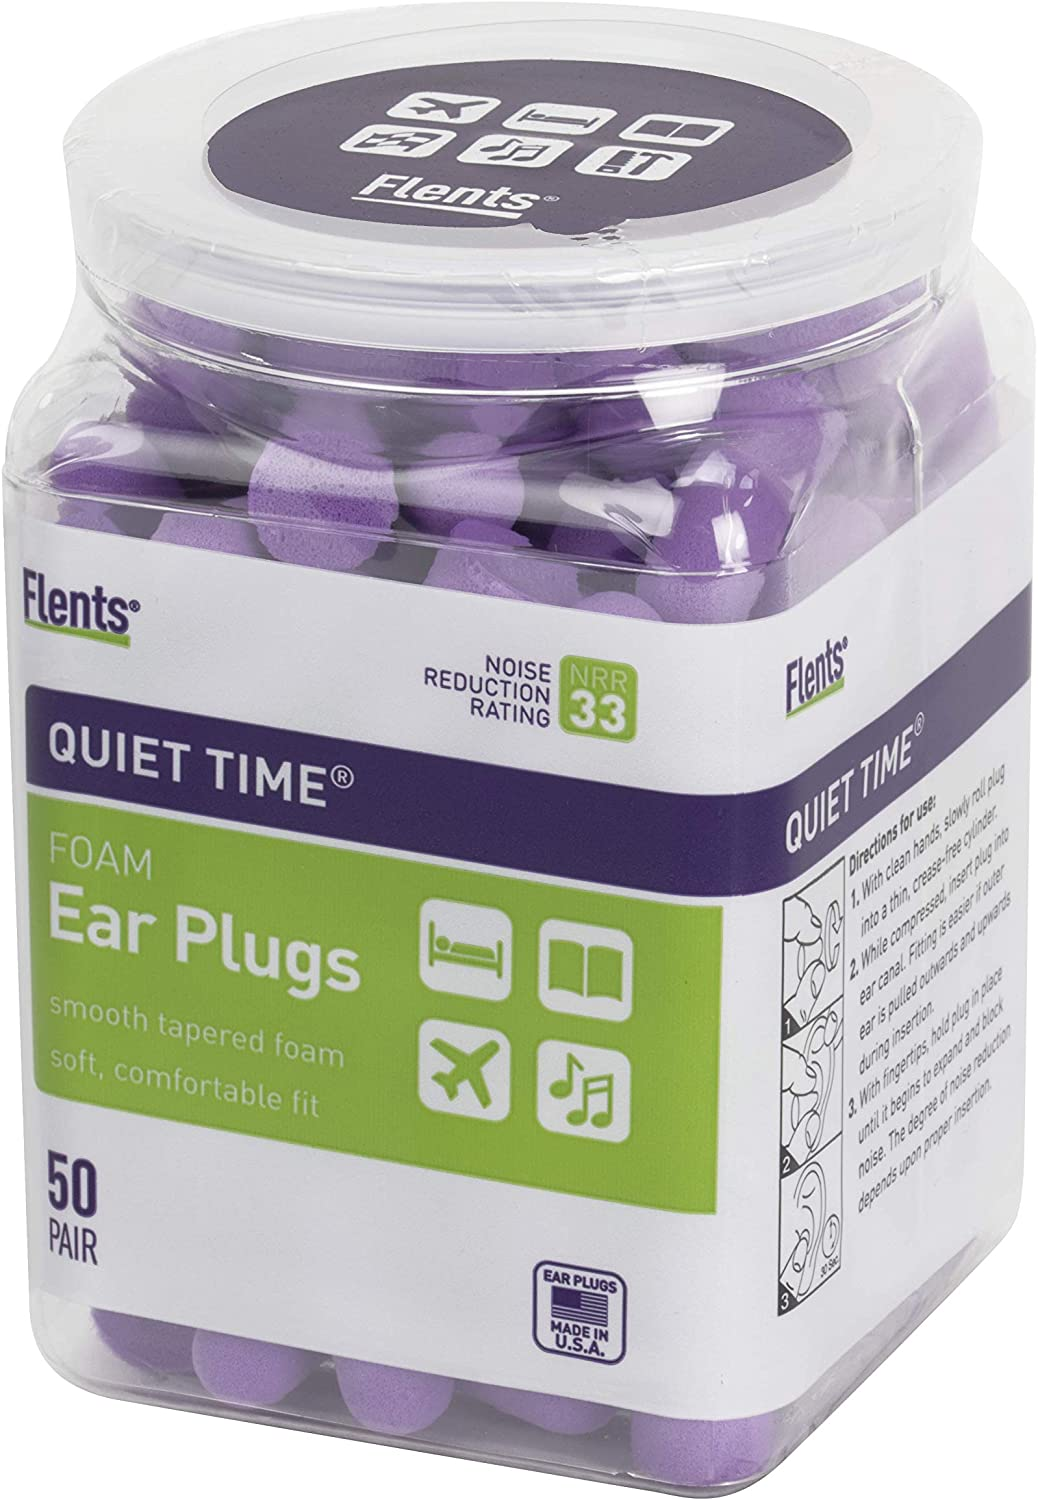 Flents Ear Plugs, 50 Pair, Ear Plugs for Sleeping, Snoring, Loud Noise, Traveling, Concerts, Construction, & Studying, NRR 33: Health & Personal Care